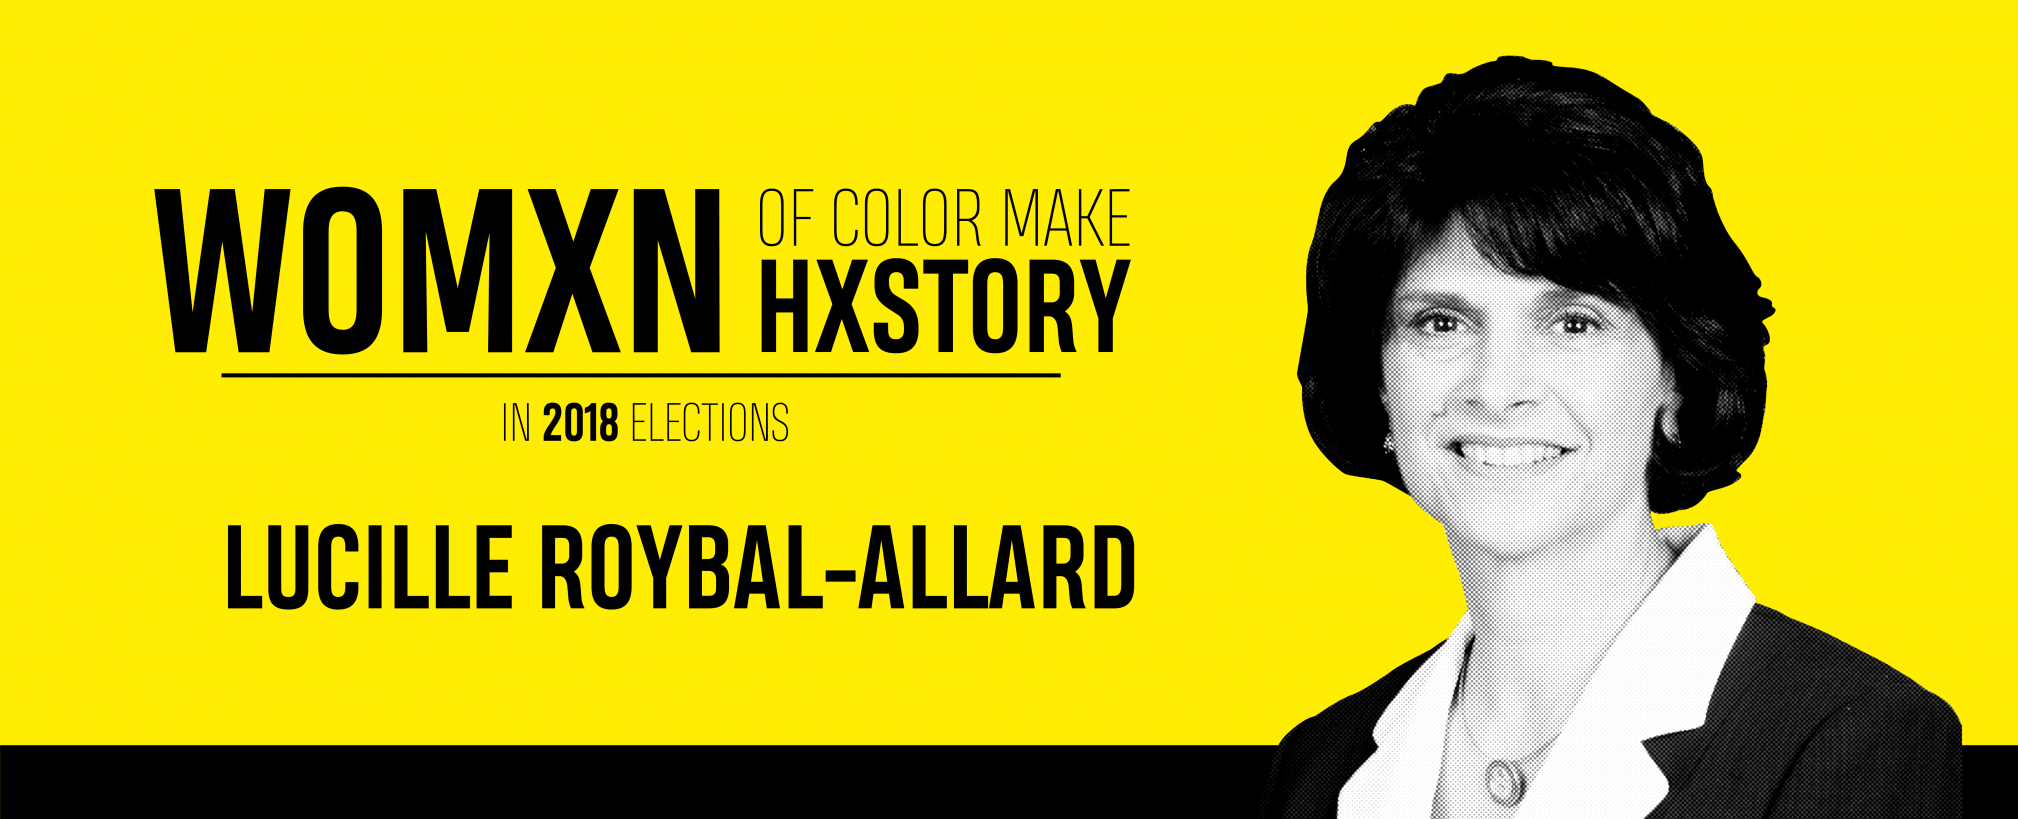 Womnx of Color Make Hxstory in 2018 Election